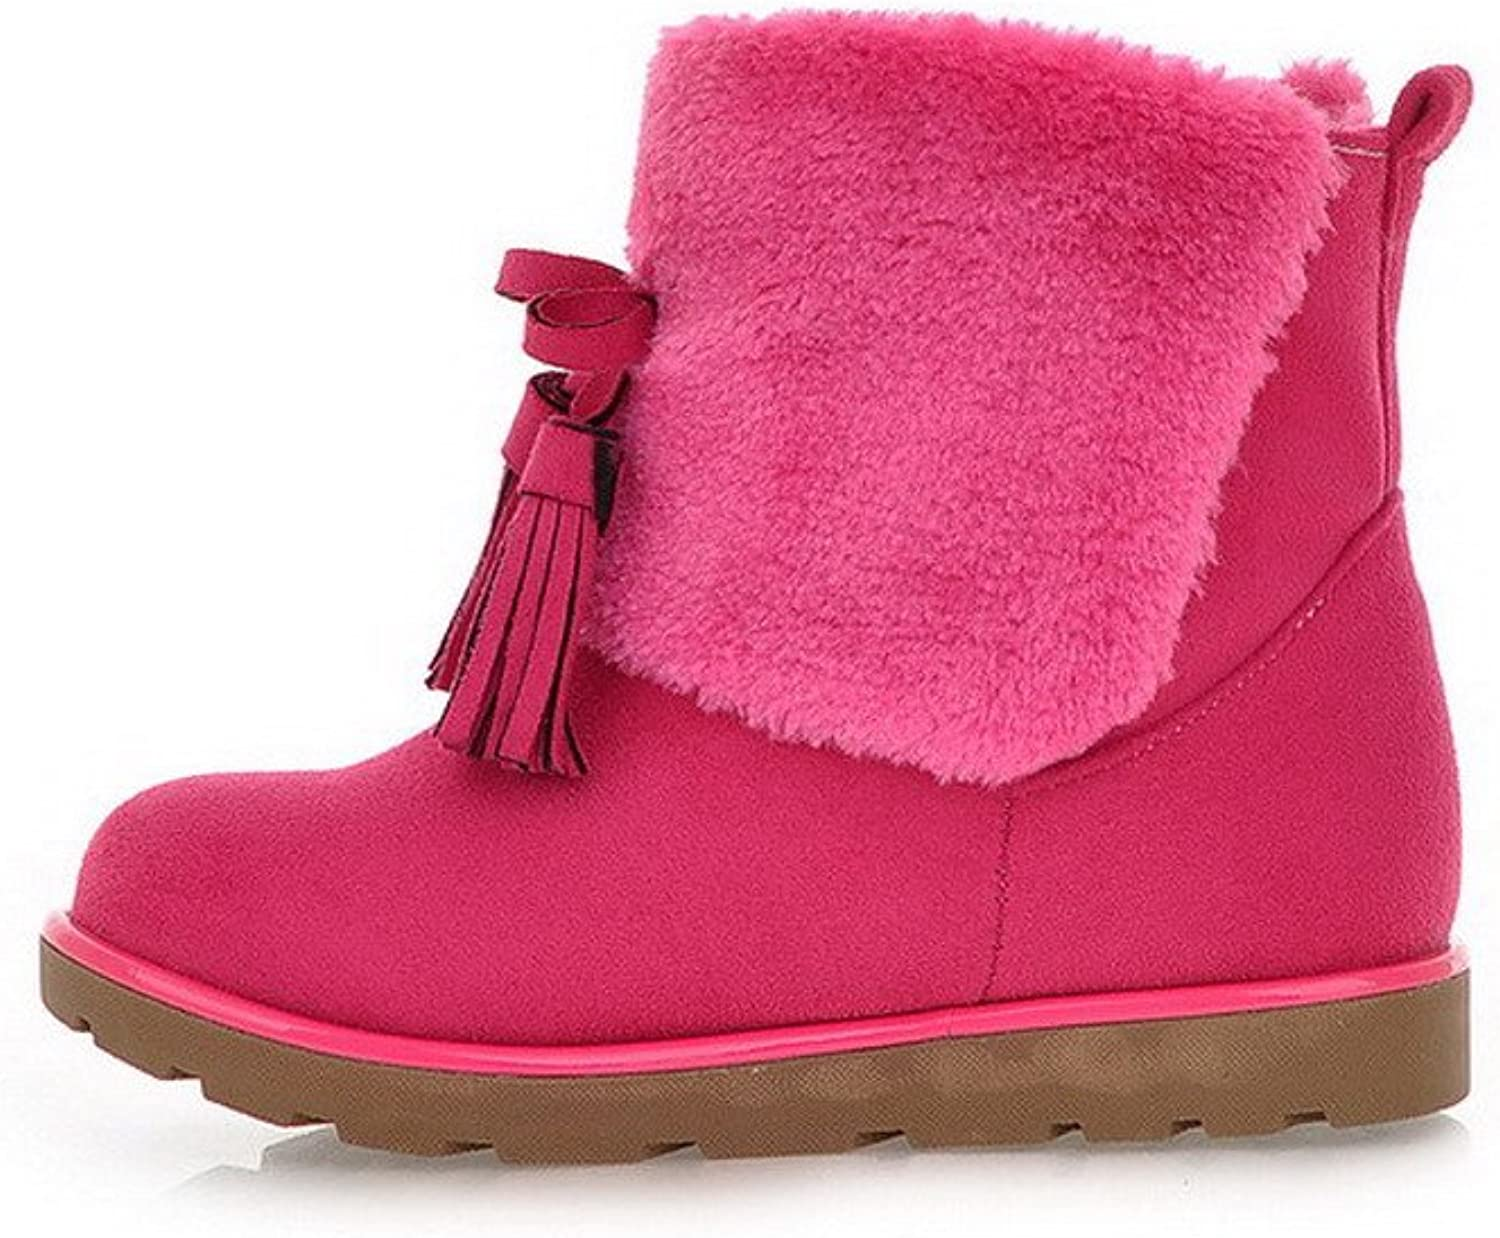 AmoonyFashion Womens Round Closed Toe Low Heels PU Frosted Short Plush Solid Boots with Tassels, Pink, 7.5 B(M) US